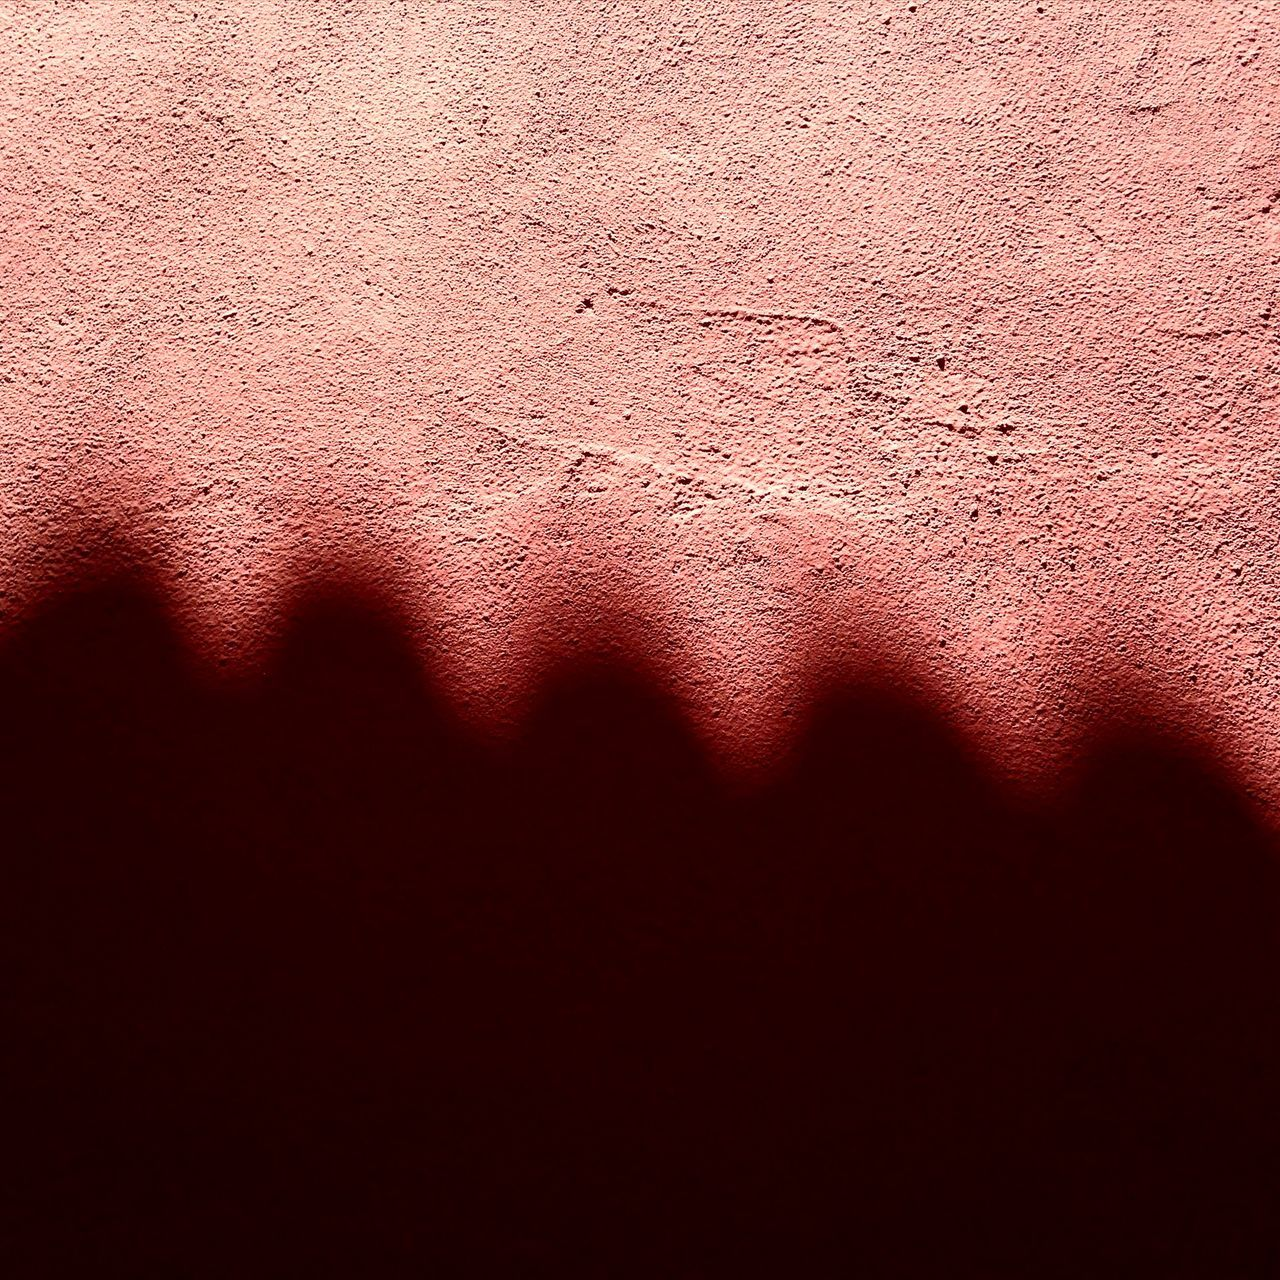 red, backgrounds, textured, liquid, brown, dirty, shadow, wet, drop, close-up, no people, ink, day